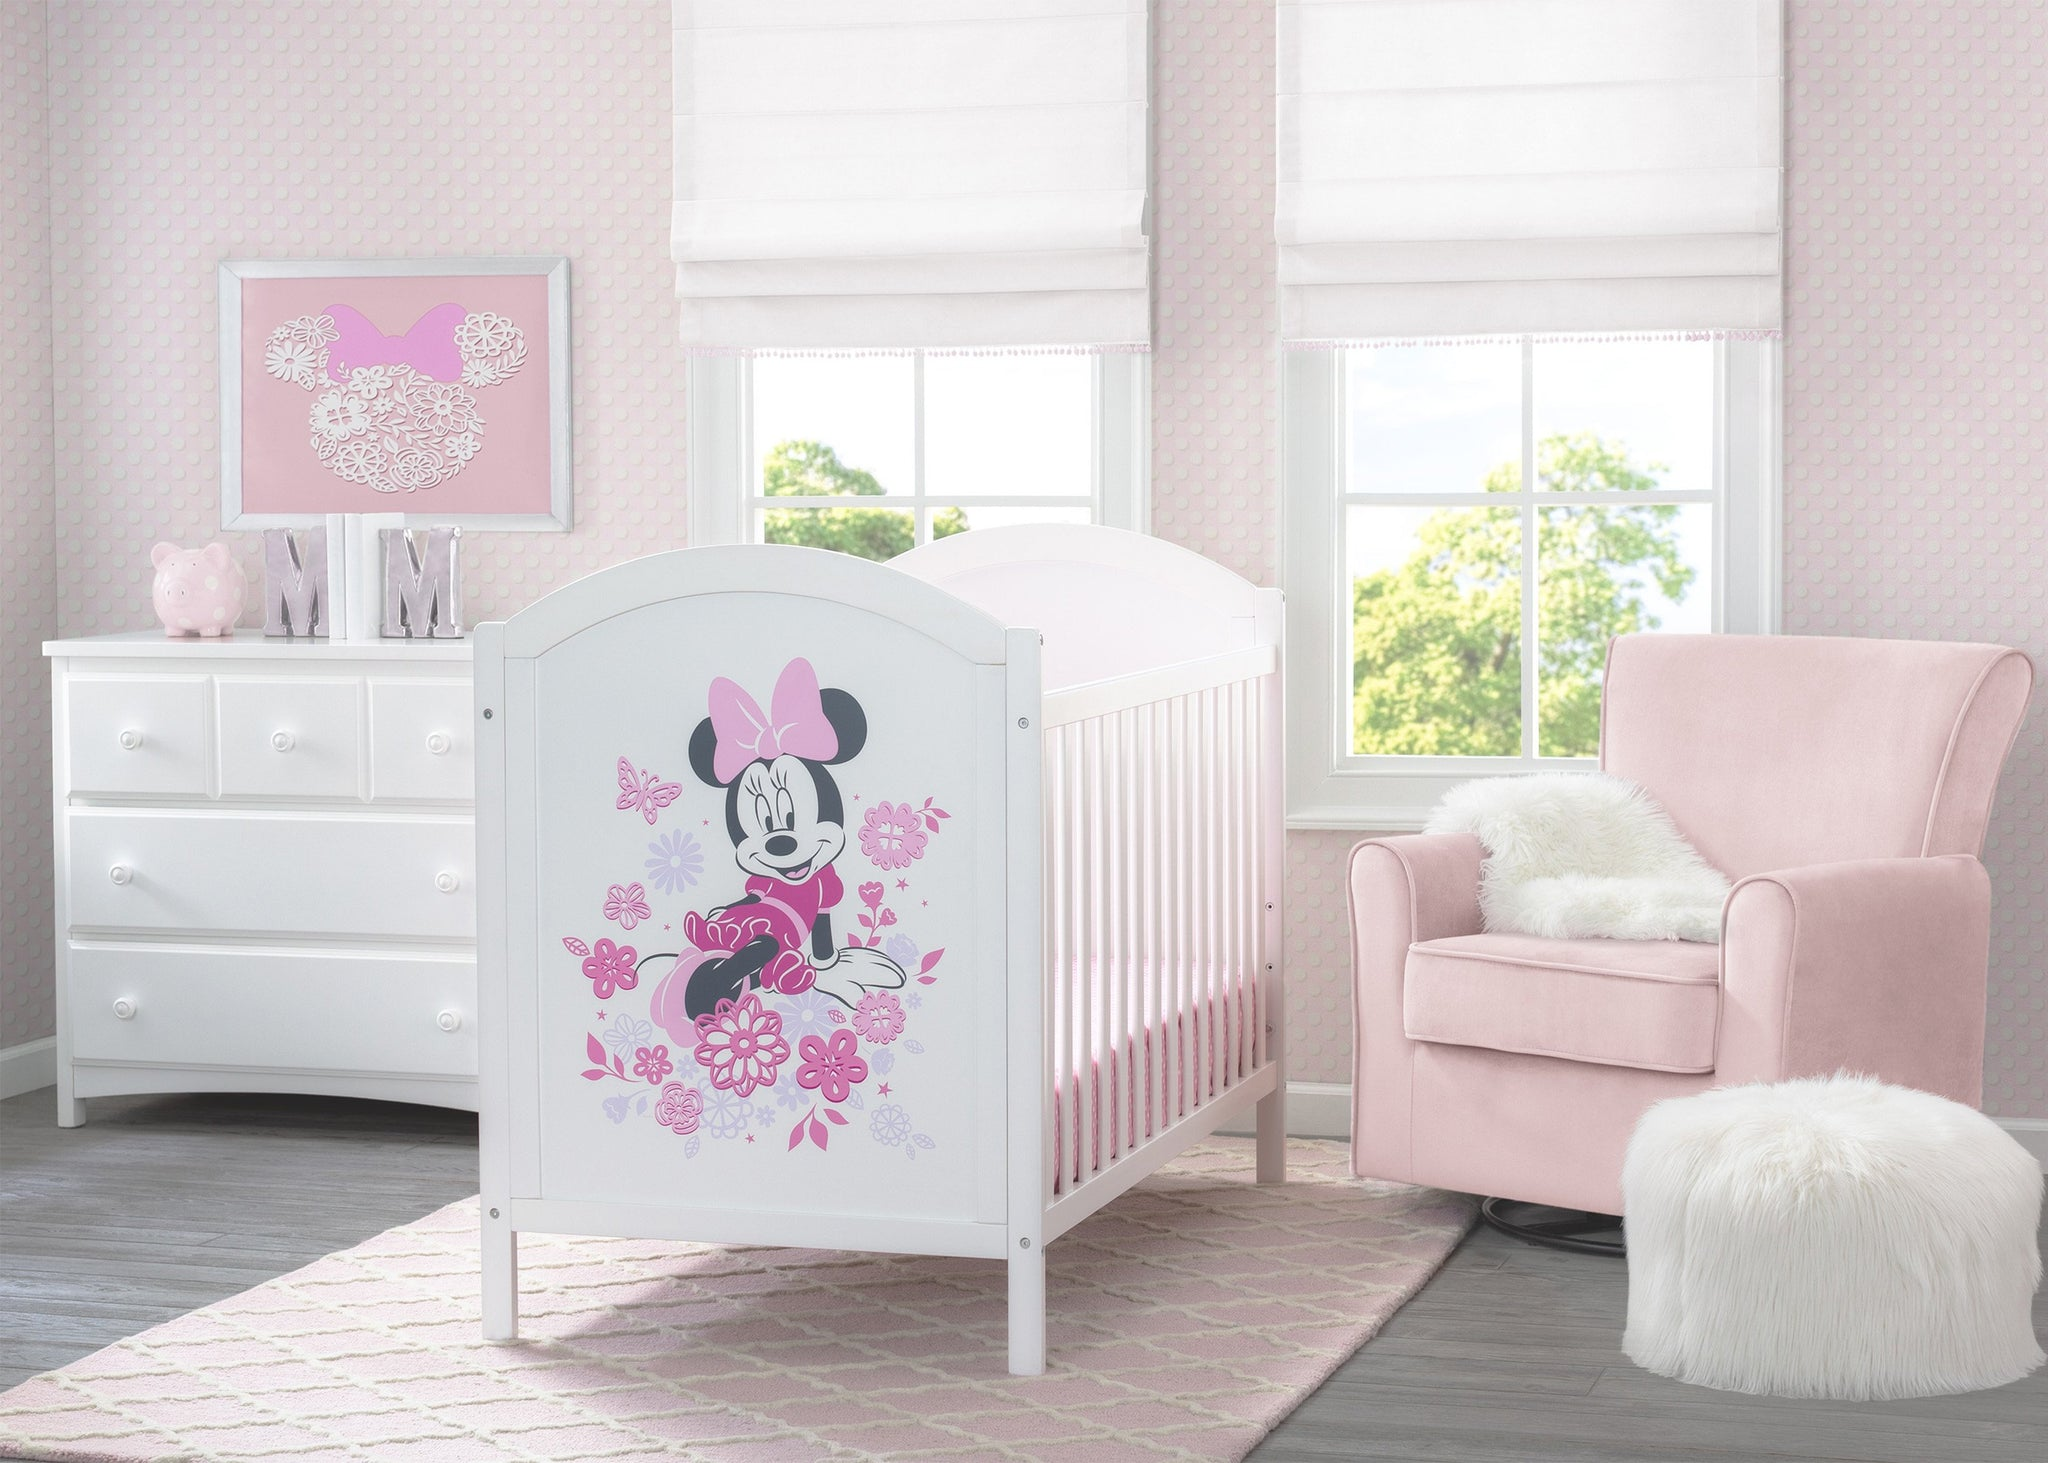 Disney Bianca White with Minnie Mouse (1302) Minnie Mouse 4-in-1 Convertible Crib by Delta Children, Room shoot